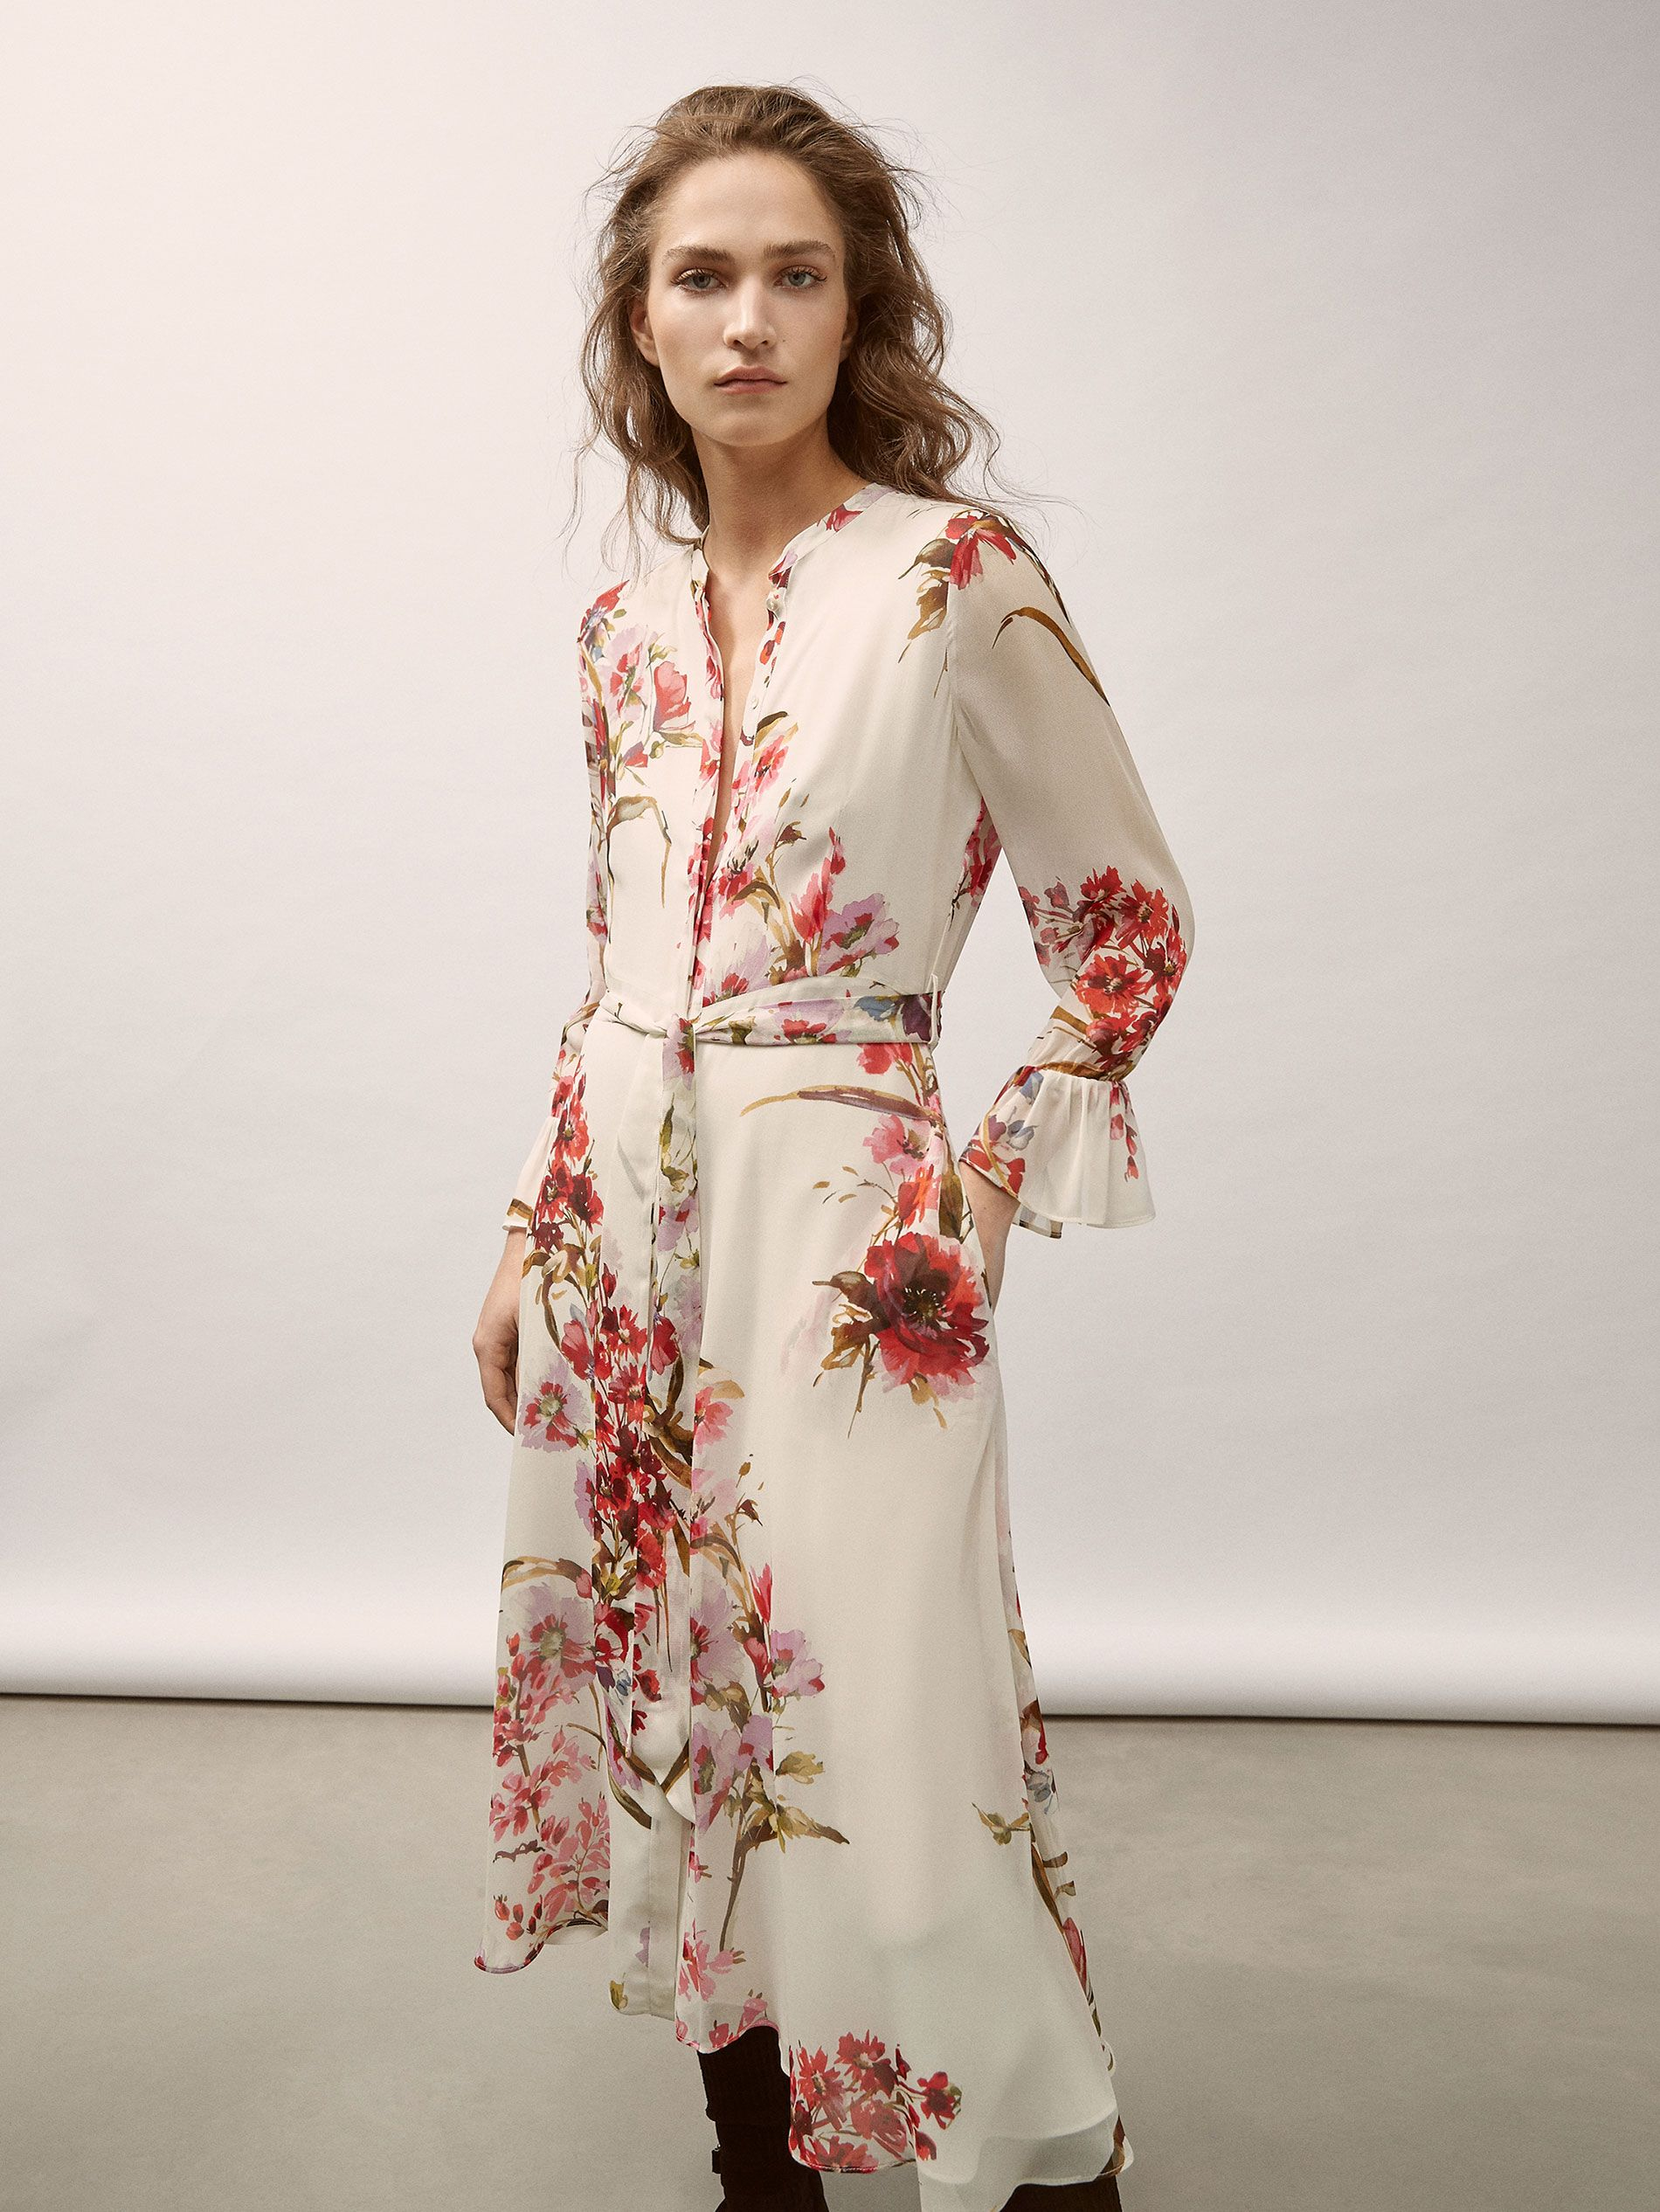 4d1d6cd1bf9 Fall Winter 2017 Women´s GEORGETTE DRESS WITH FLORAL PRINT at Massimo Dutti  for 150. Effortless elegance!